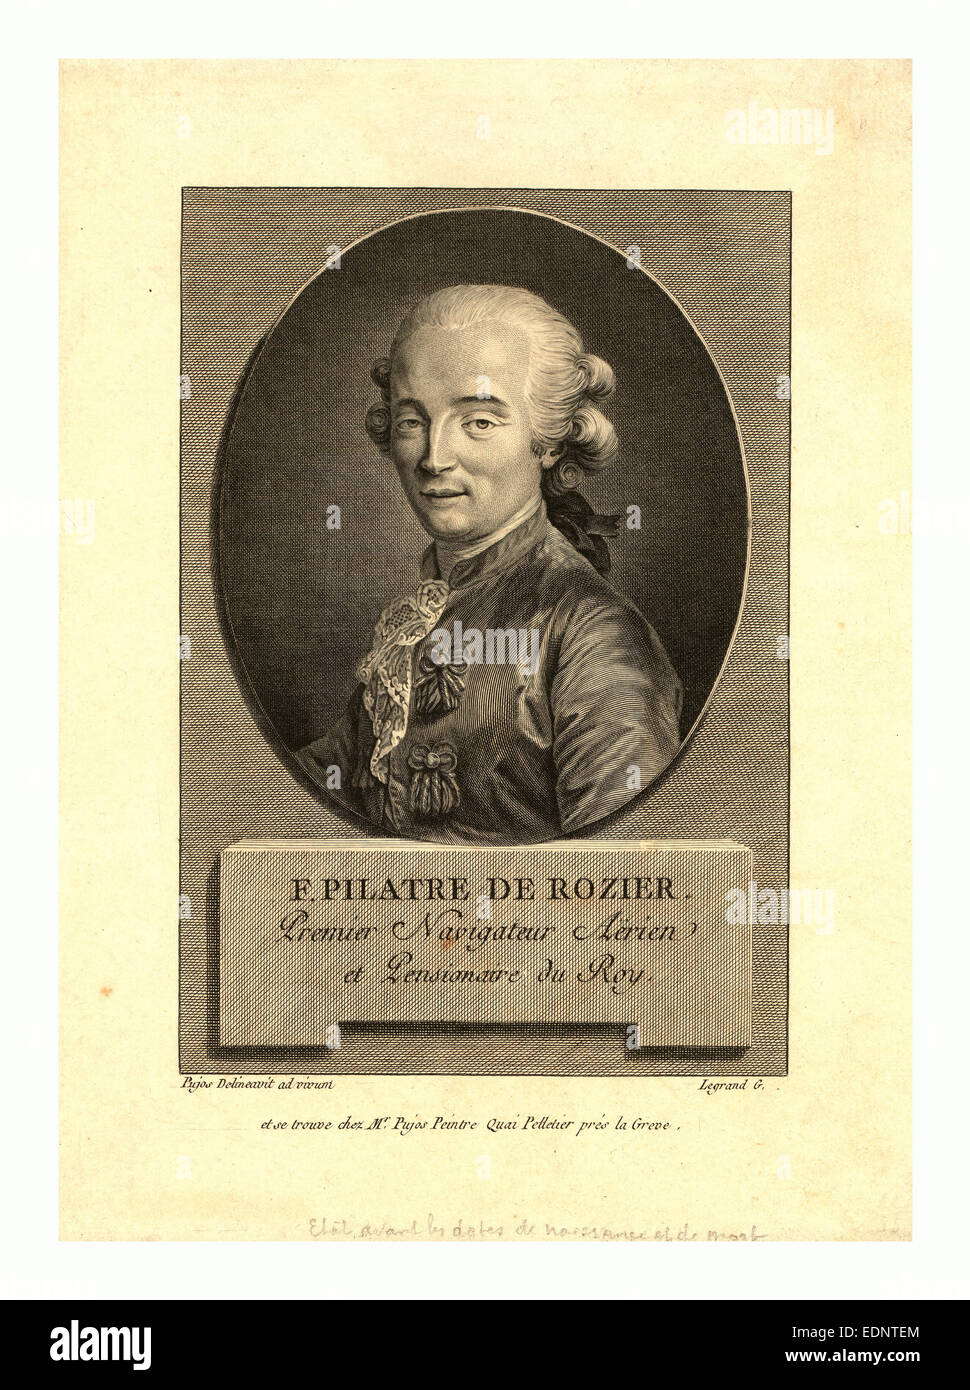 Oval head-and-shoulders portrait of French balloonist Jean-François Pilâtre de Rozier, who took the first - Stock Image